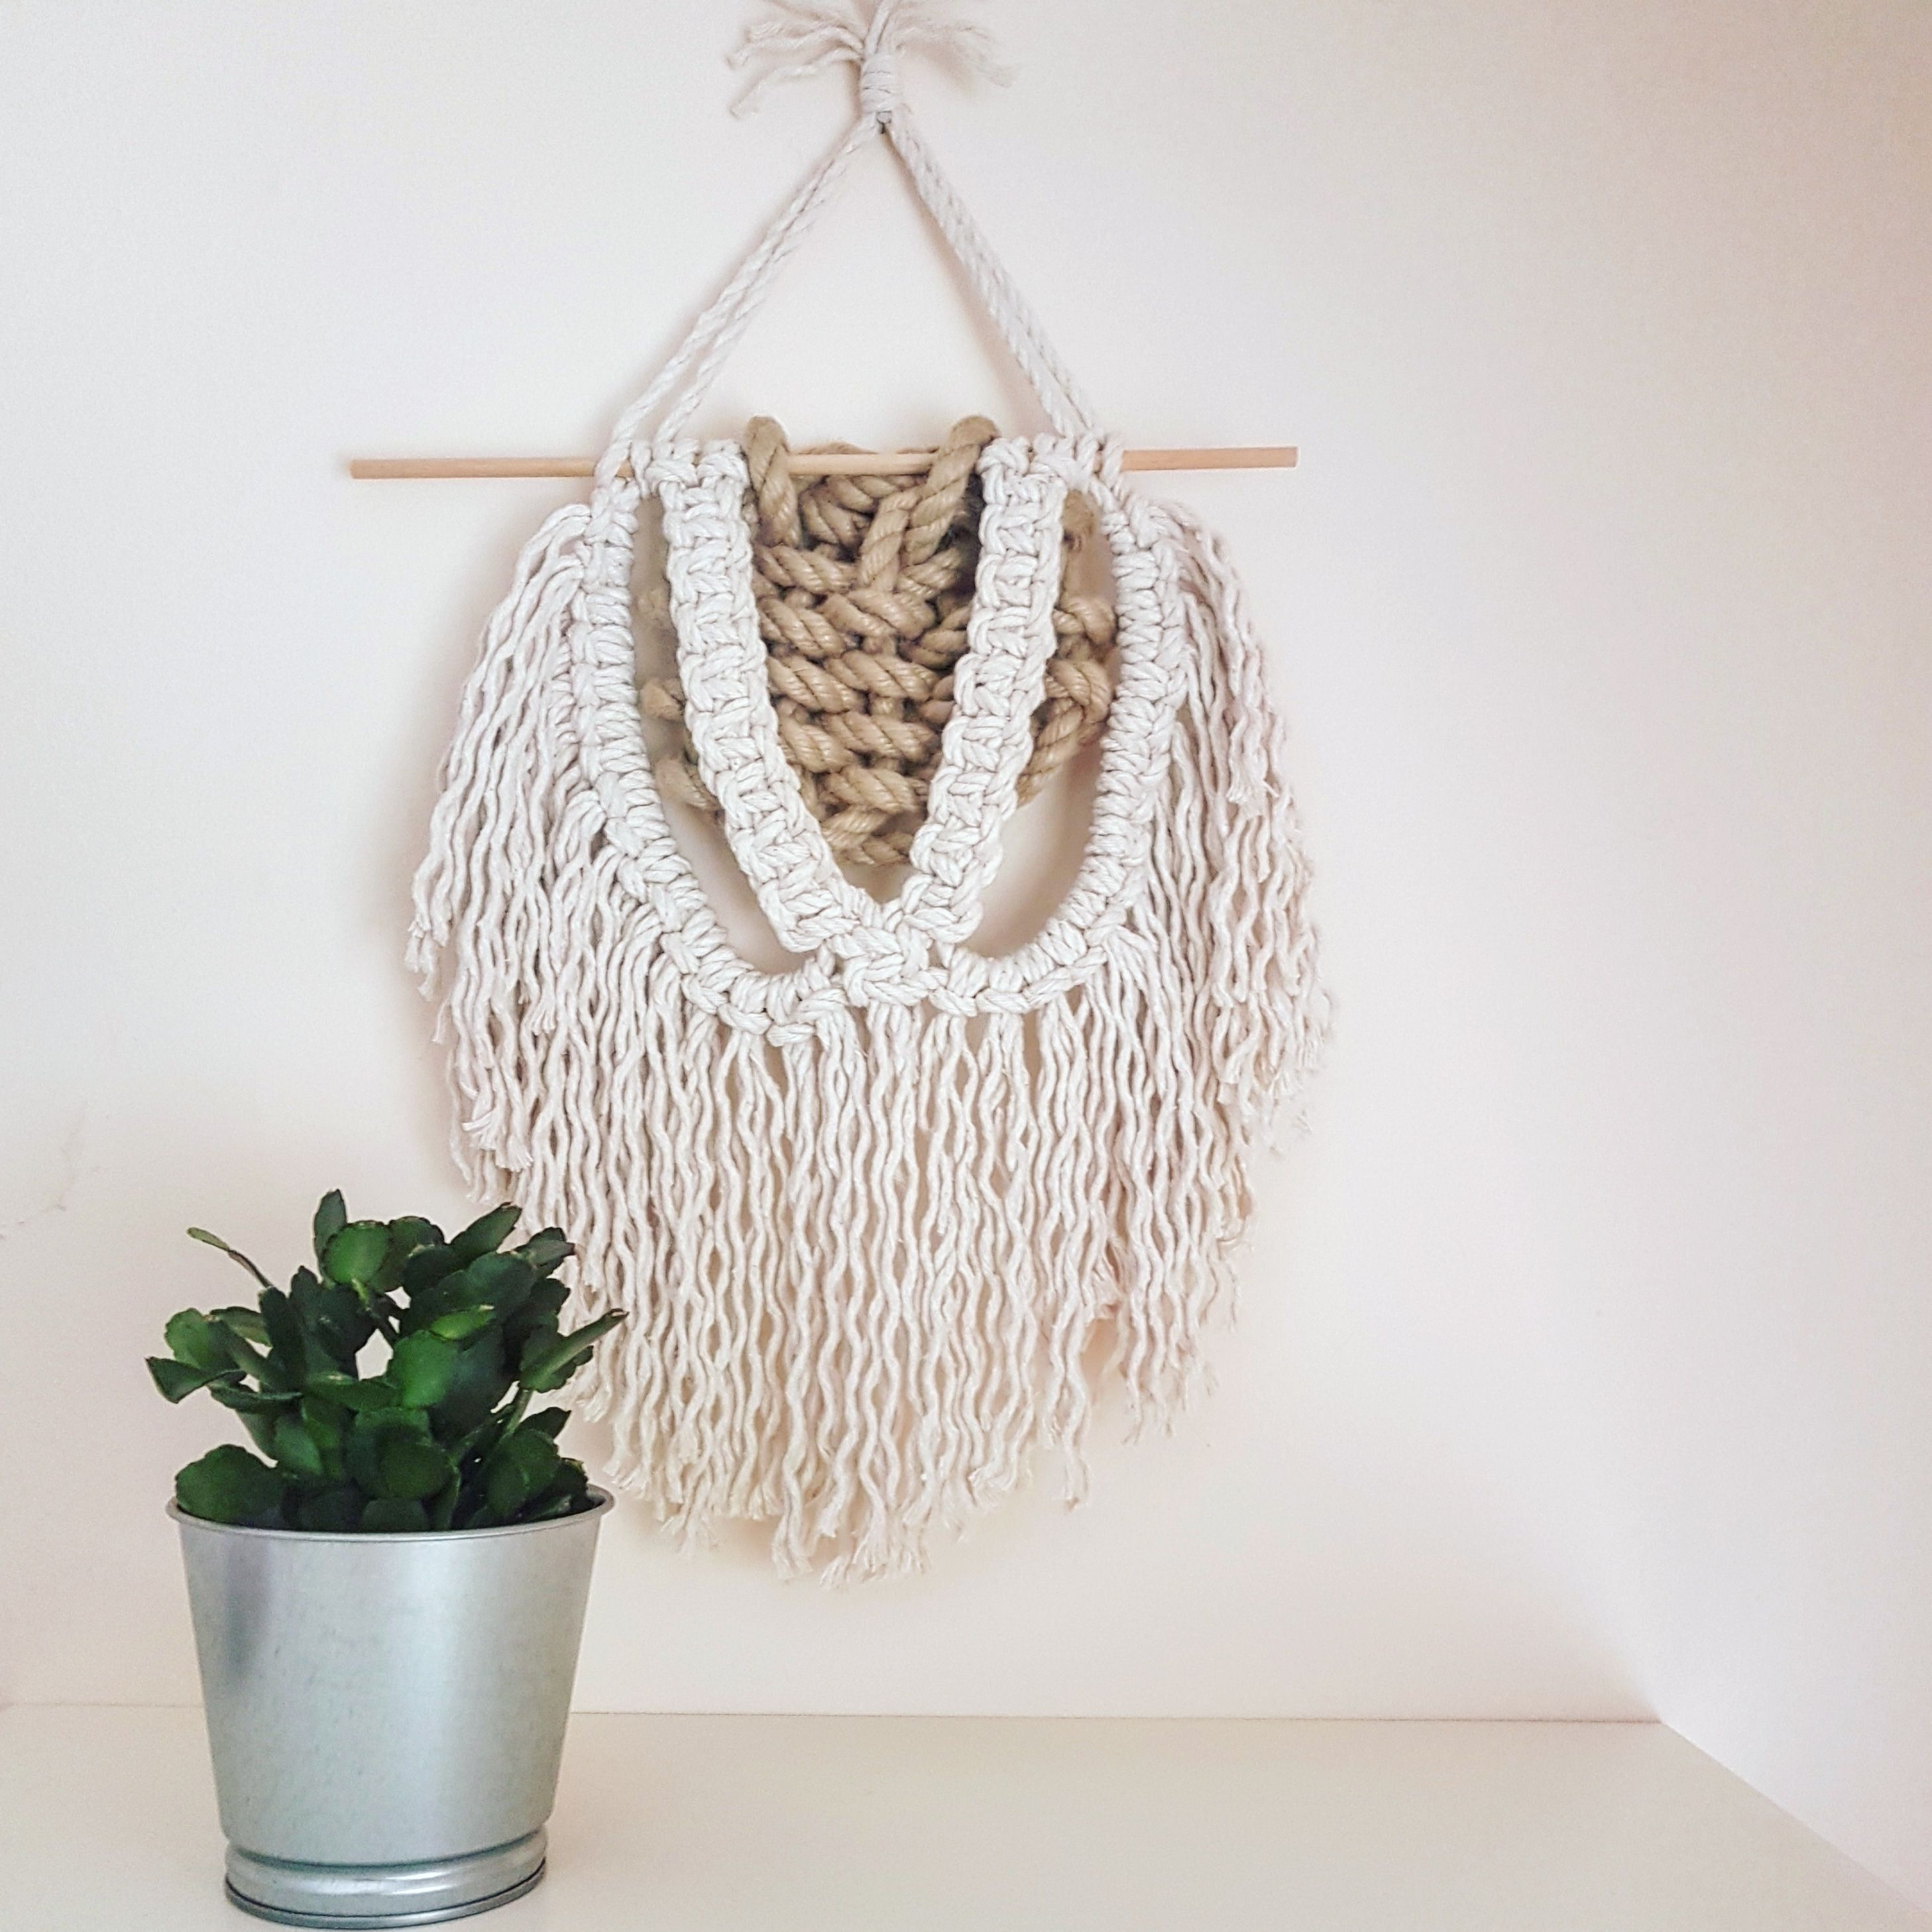 Give Your Room Fresh Look With This Beauty Wall Hanging